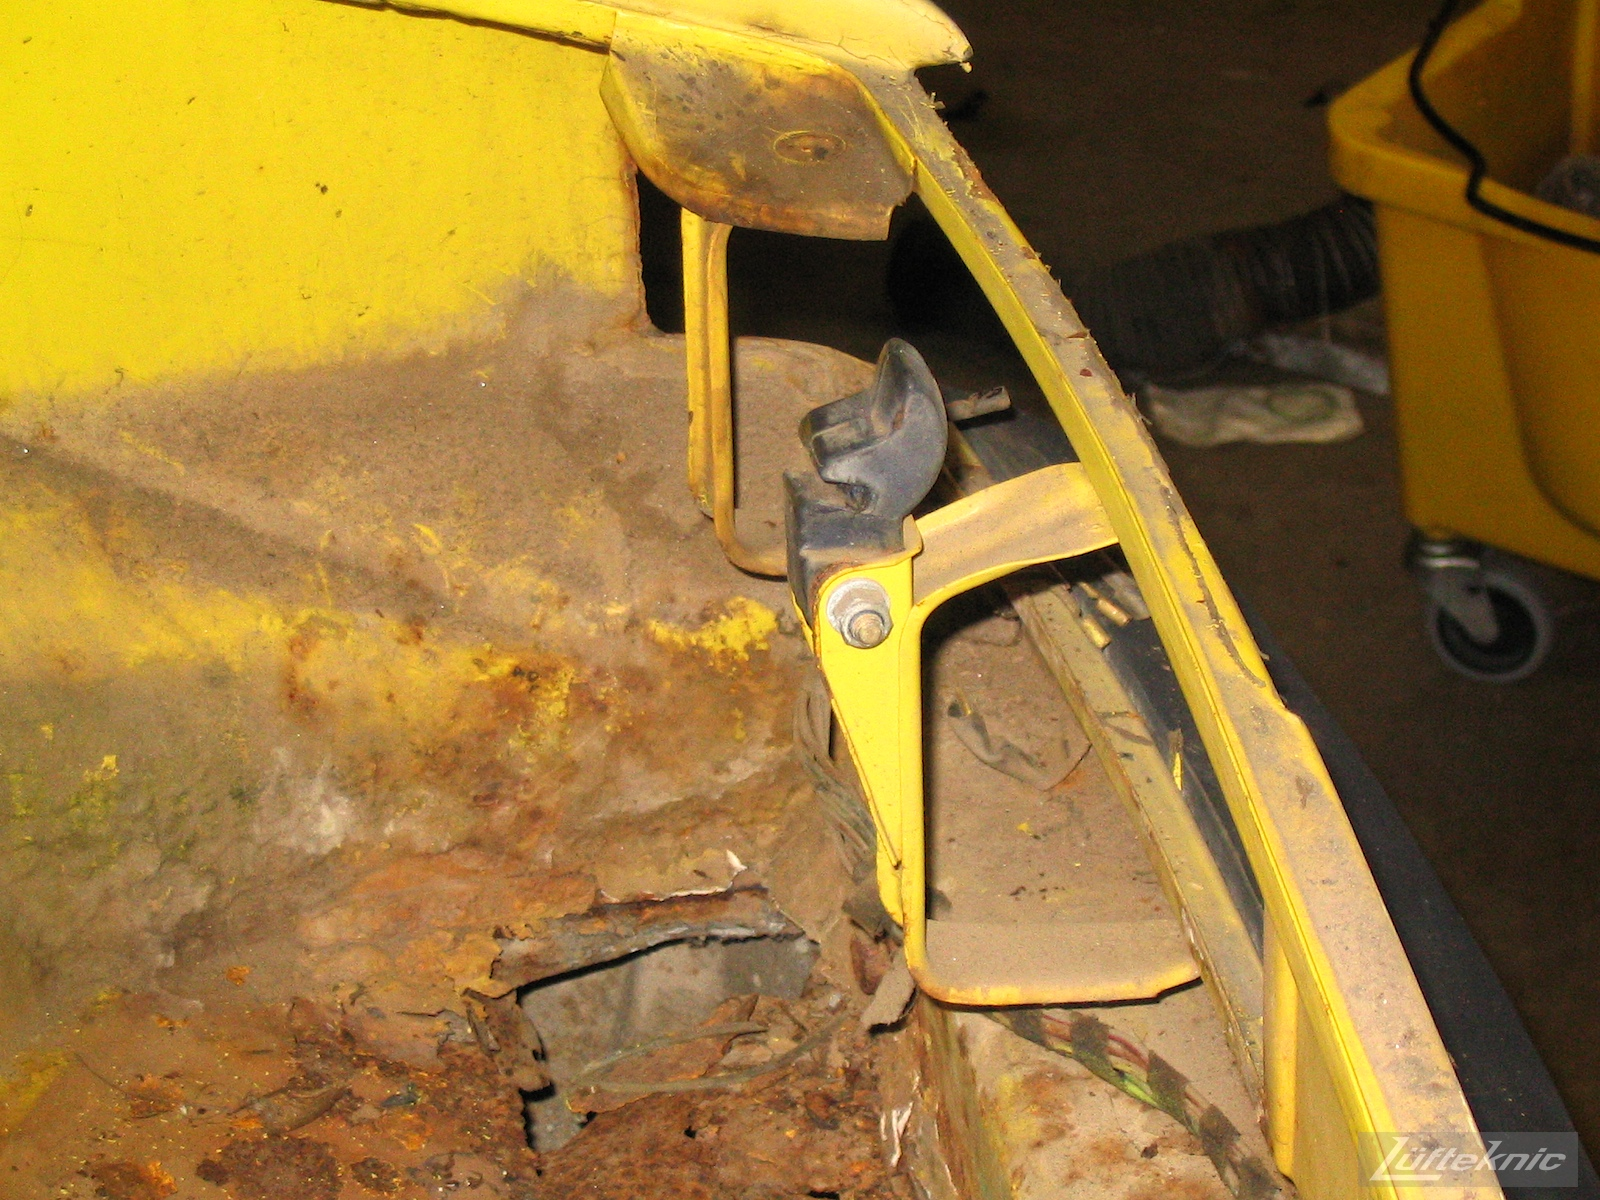 Significant rust damage on the chassis of a yellow Porsche 914.